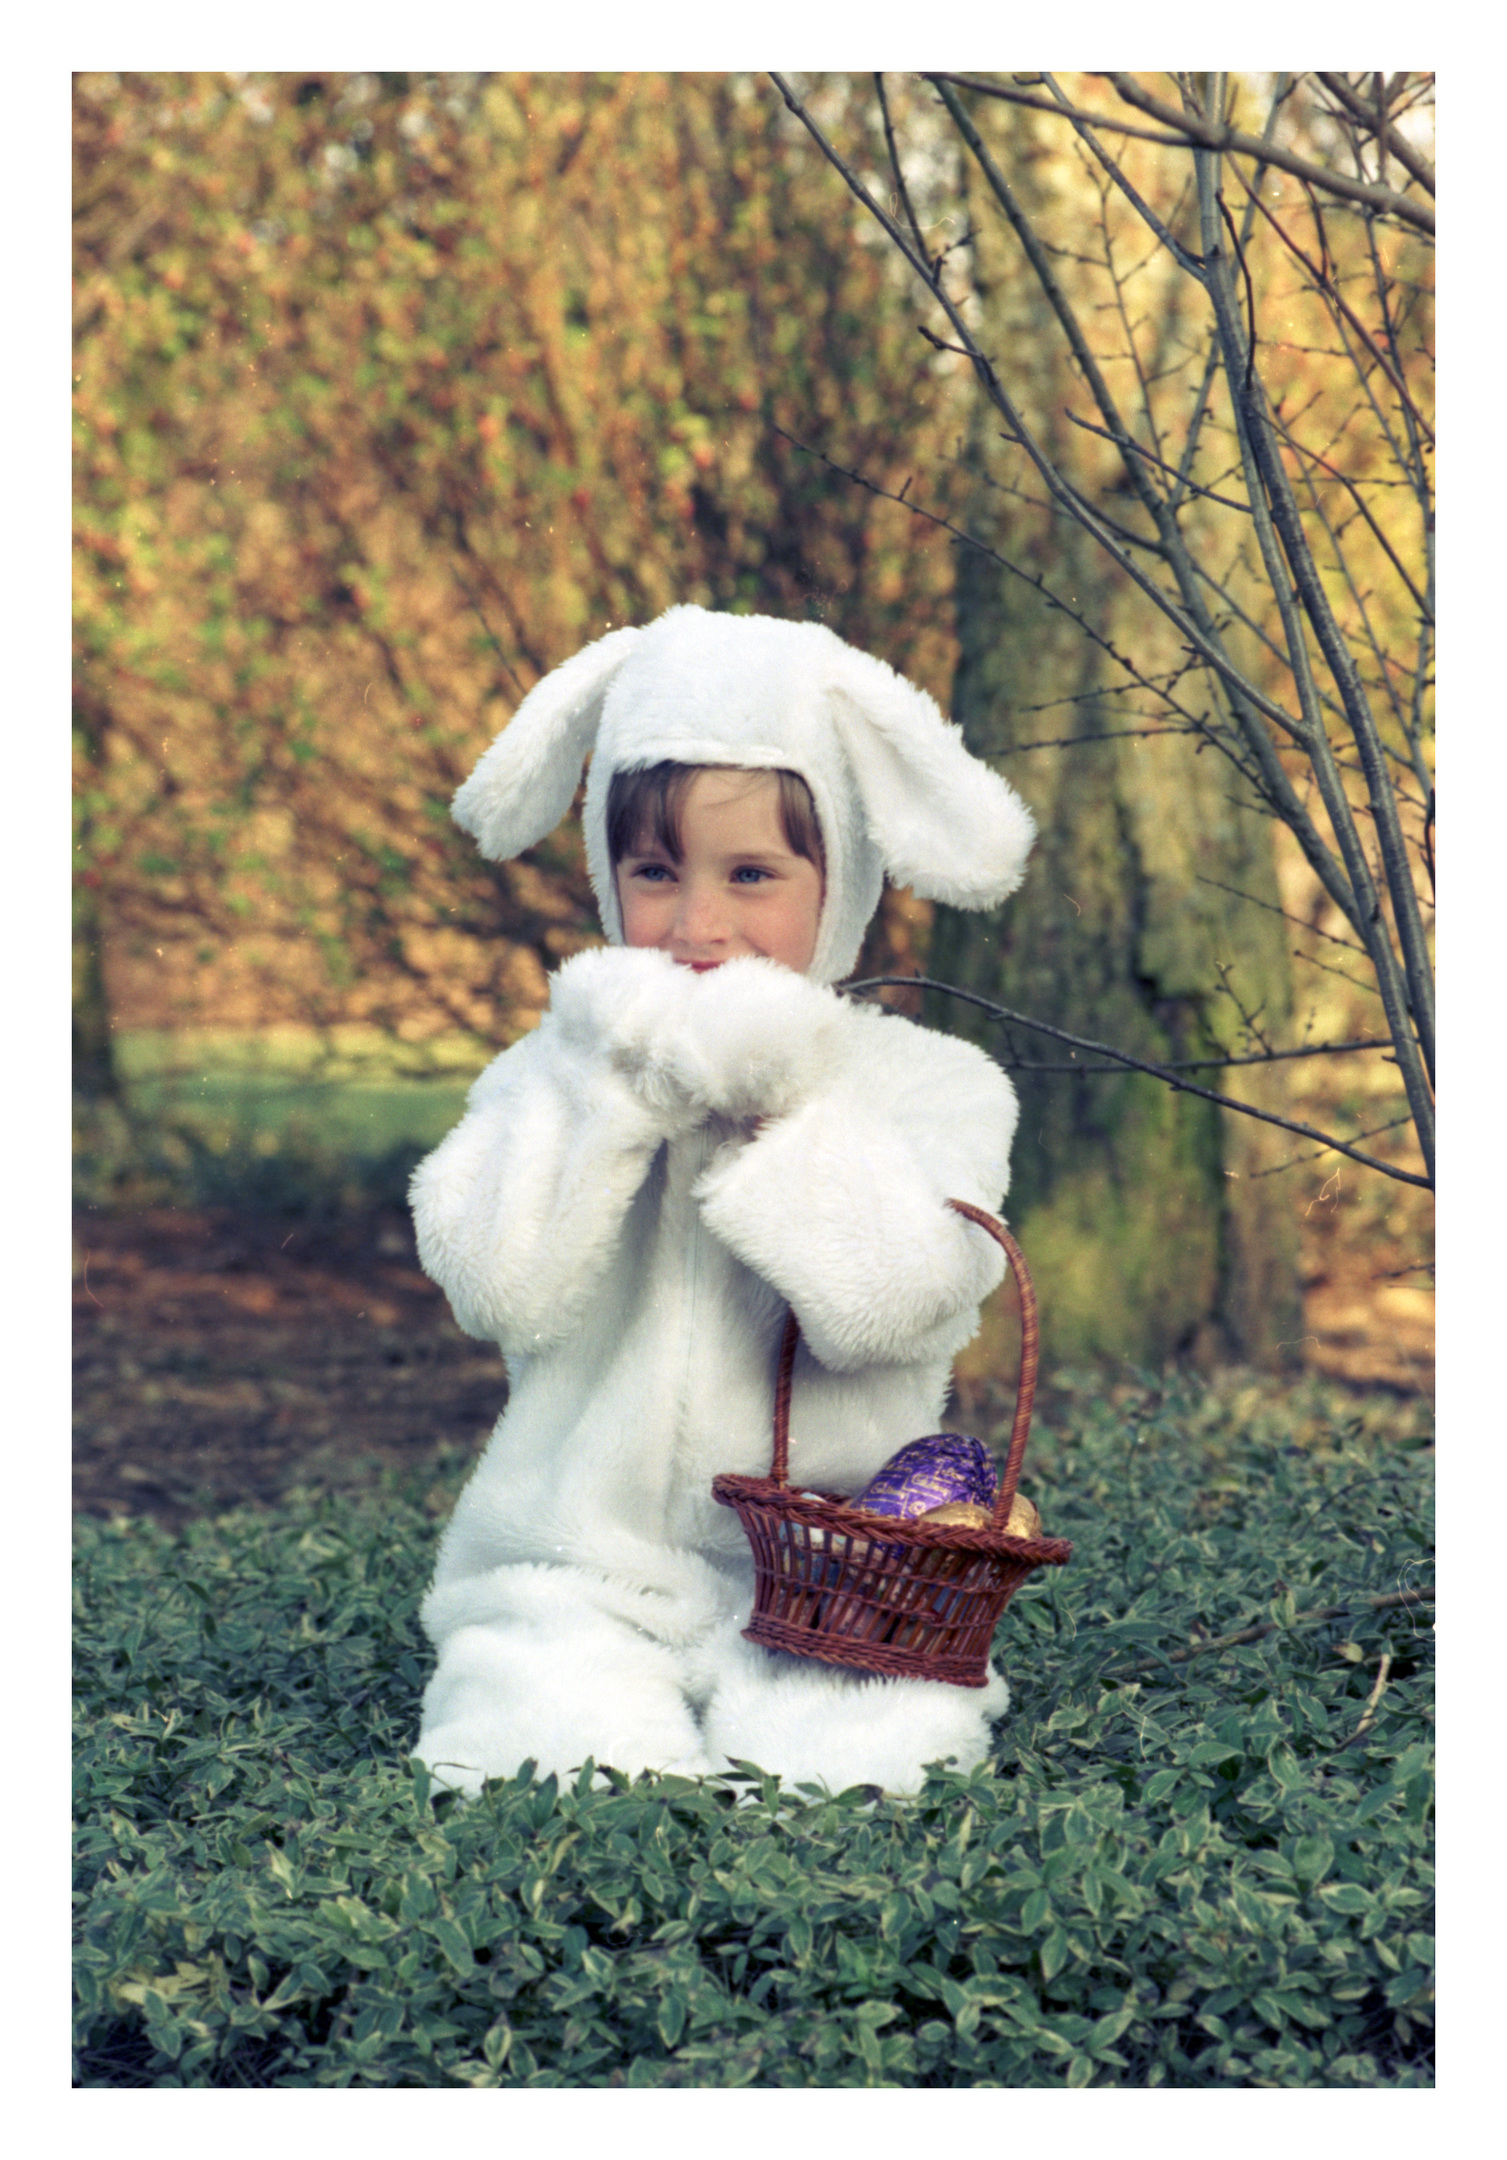 HOPPING ALONG: Jayne Irvine, of Westhill, was dressed up as a bunny in preparation for Easter.